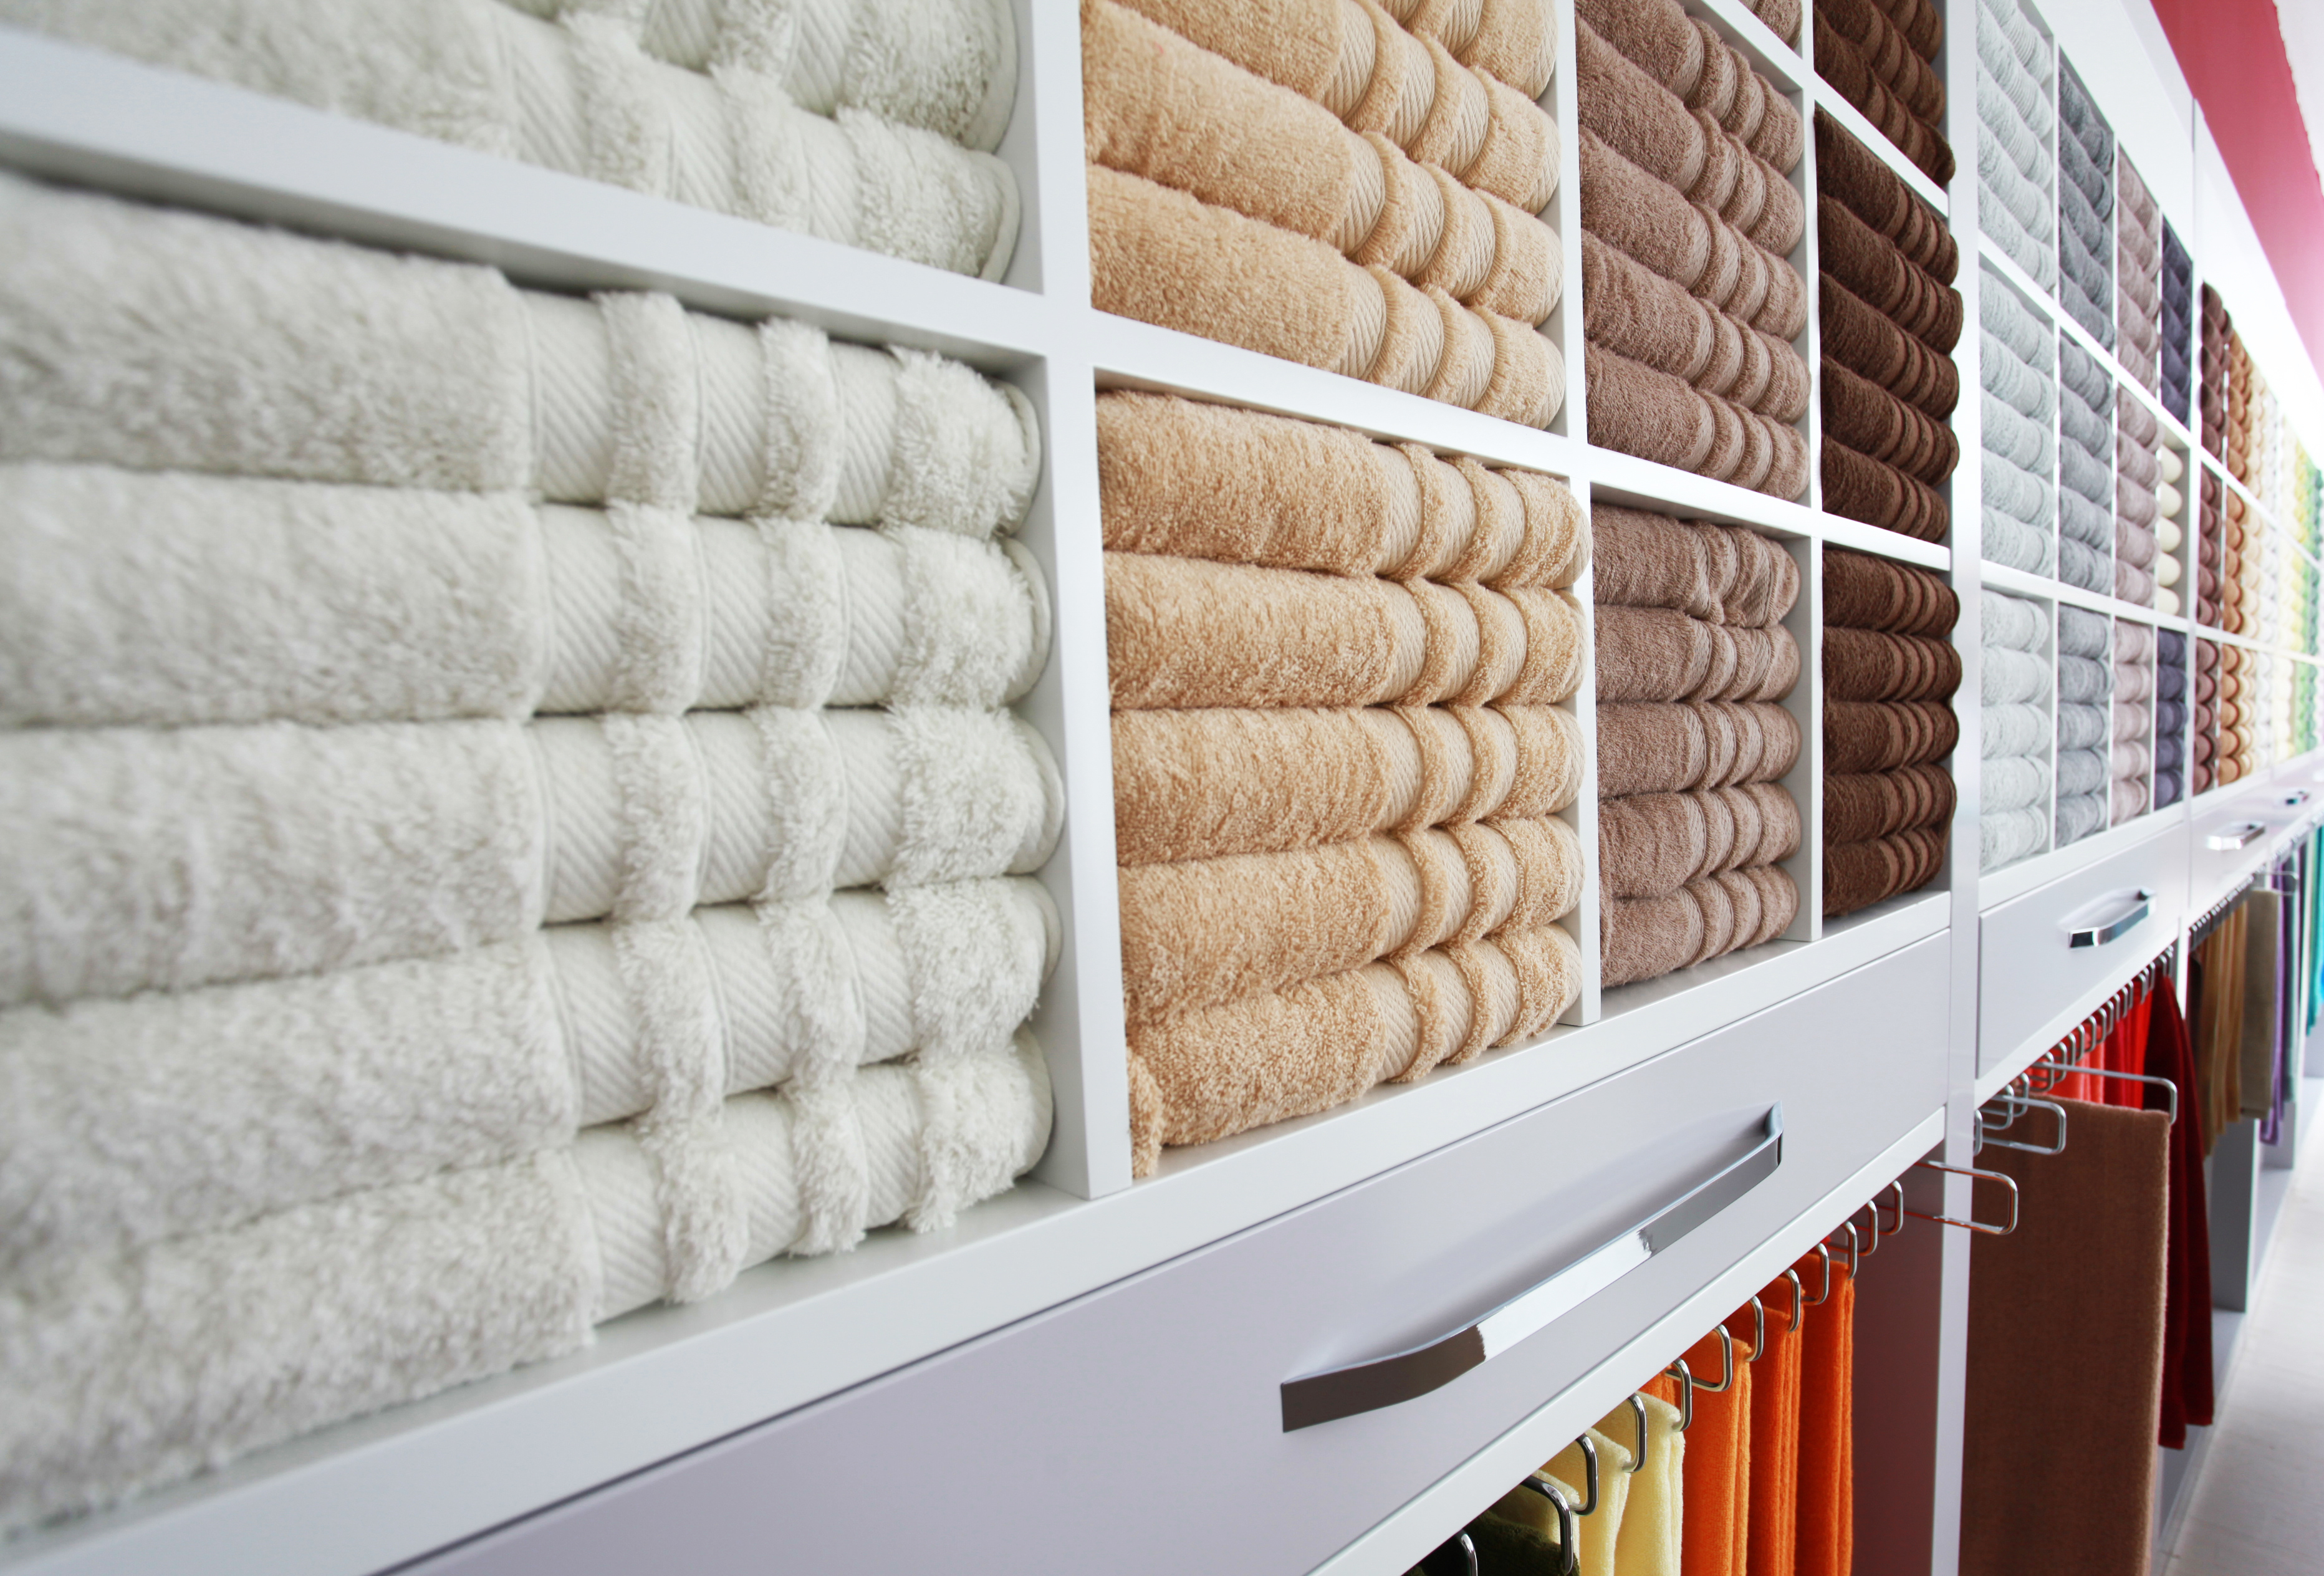 Luxury towels at point of sale.